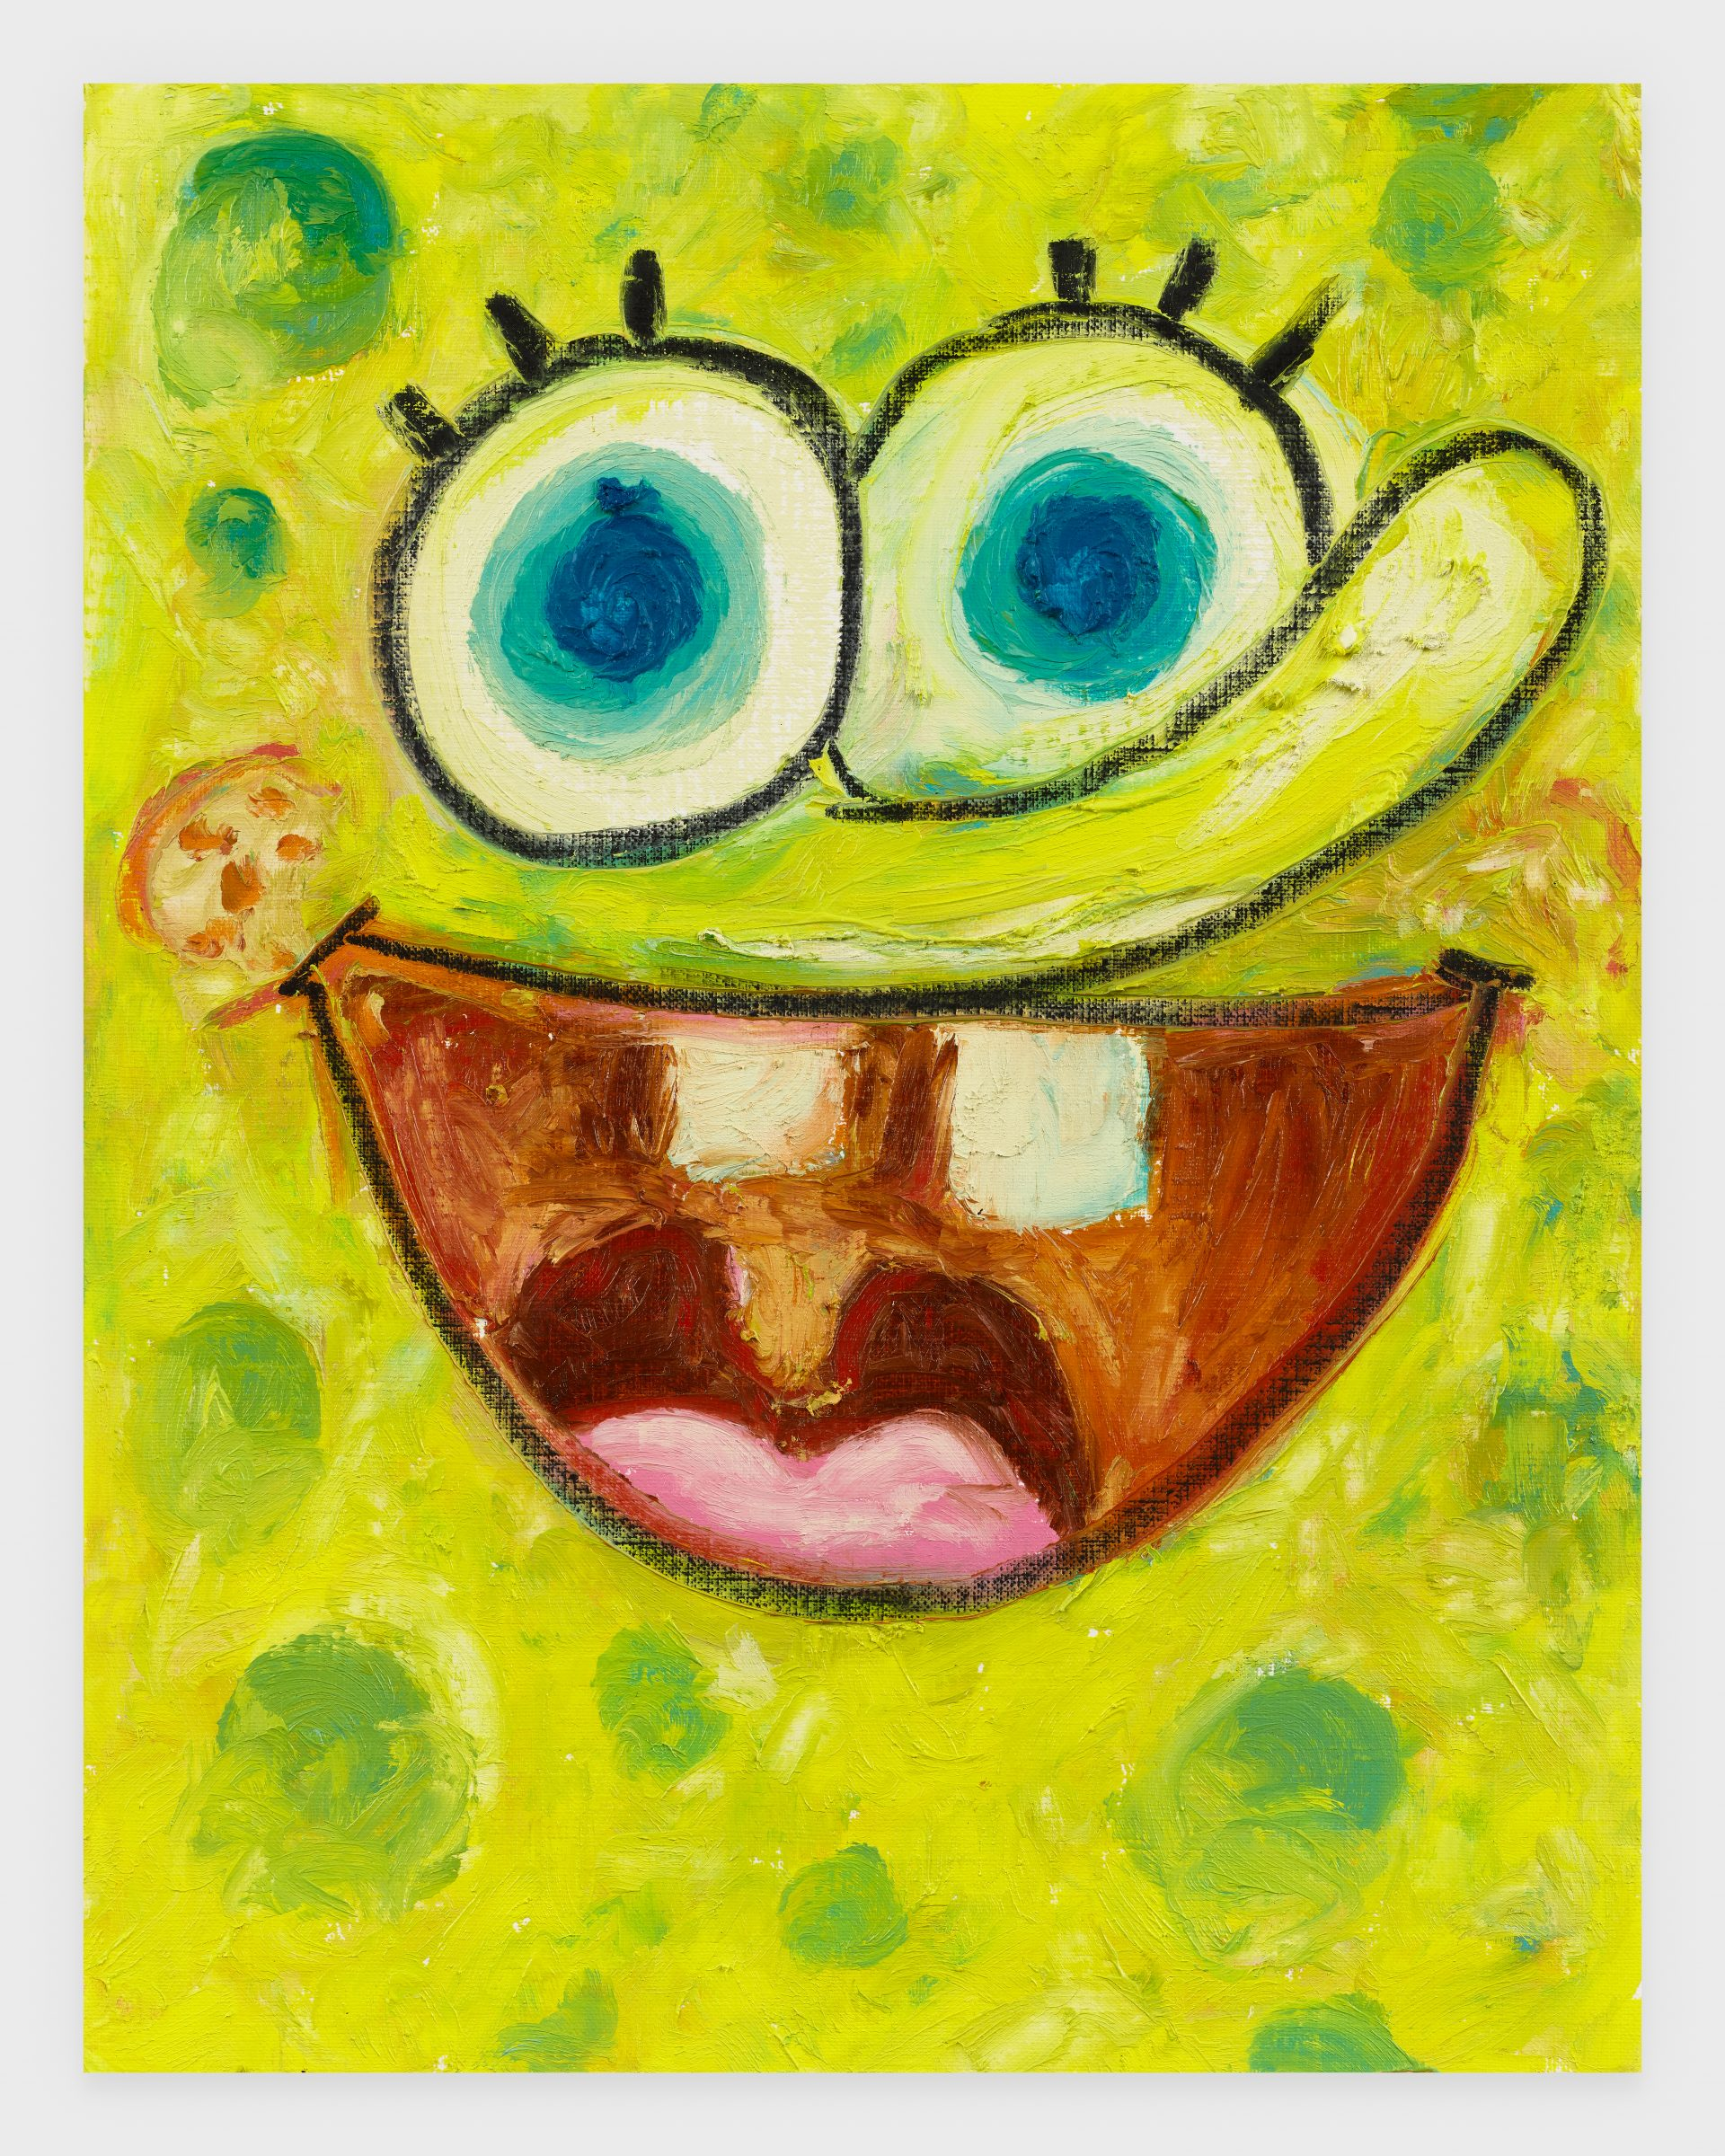 Spongebob, 2020, Oil stick on archival paper, 11 x 14 inches